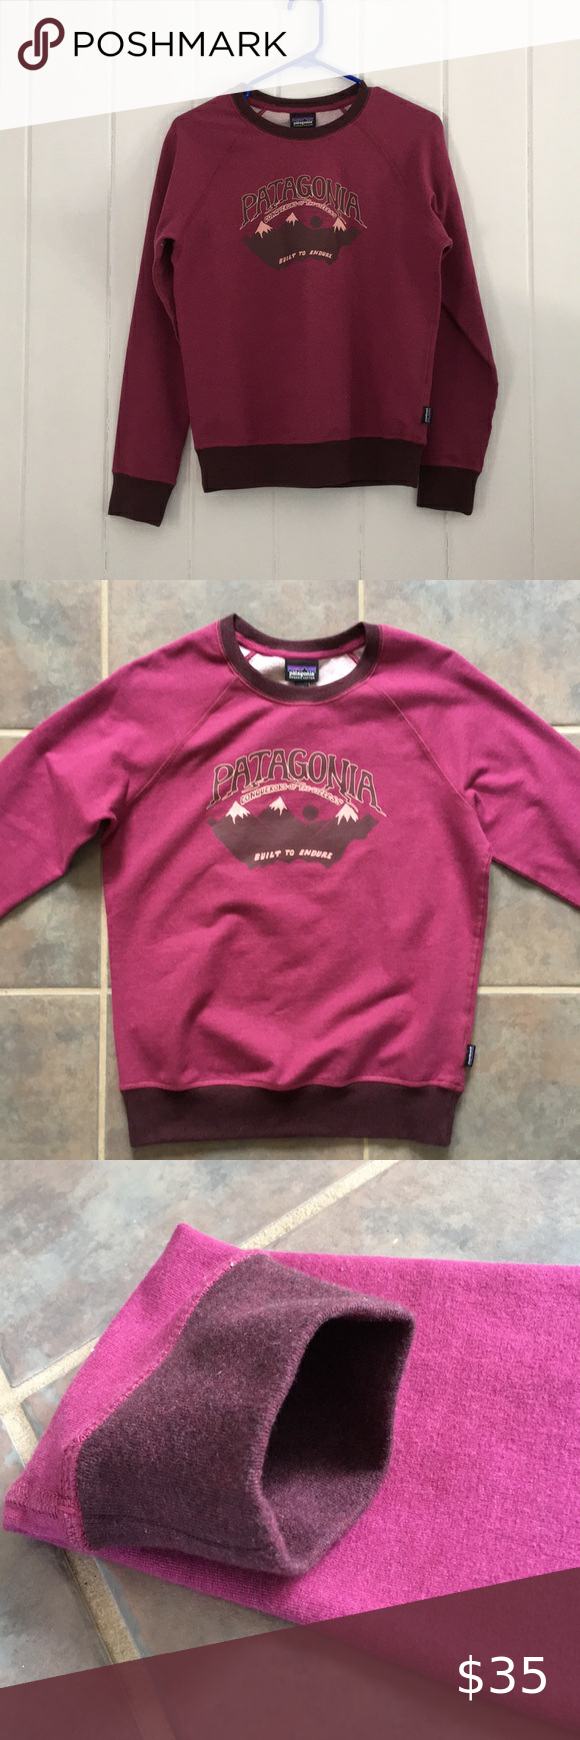 Patagonia Hazy Peaks Midweight Crew Sweater Clothes Design Crew Sweaters Sweaters [ 1740 x 580 Pixel ]